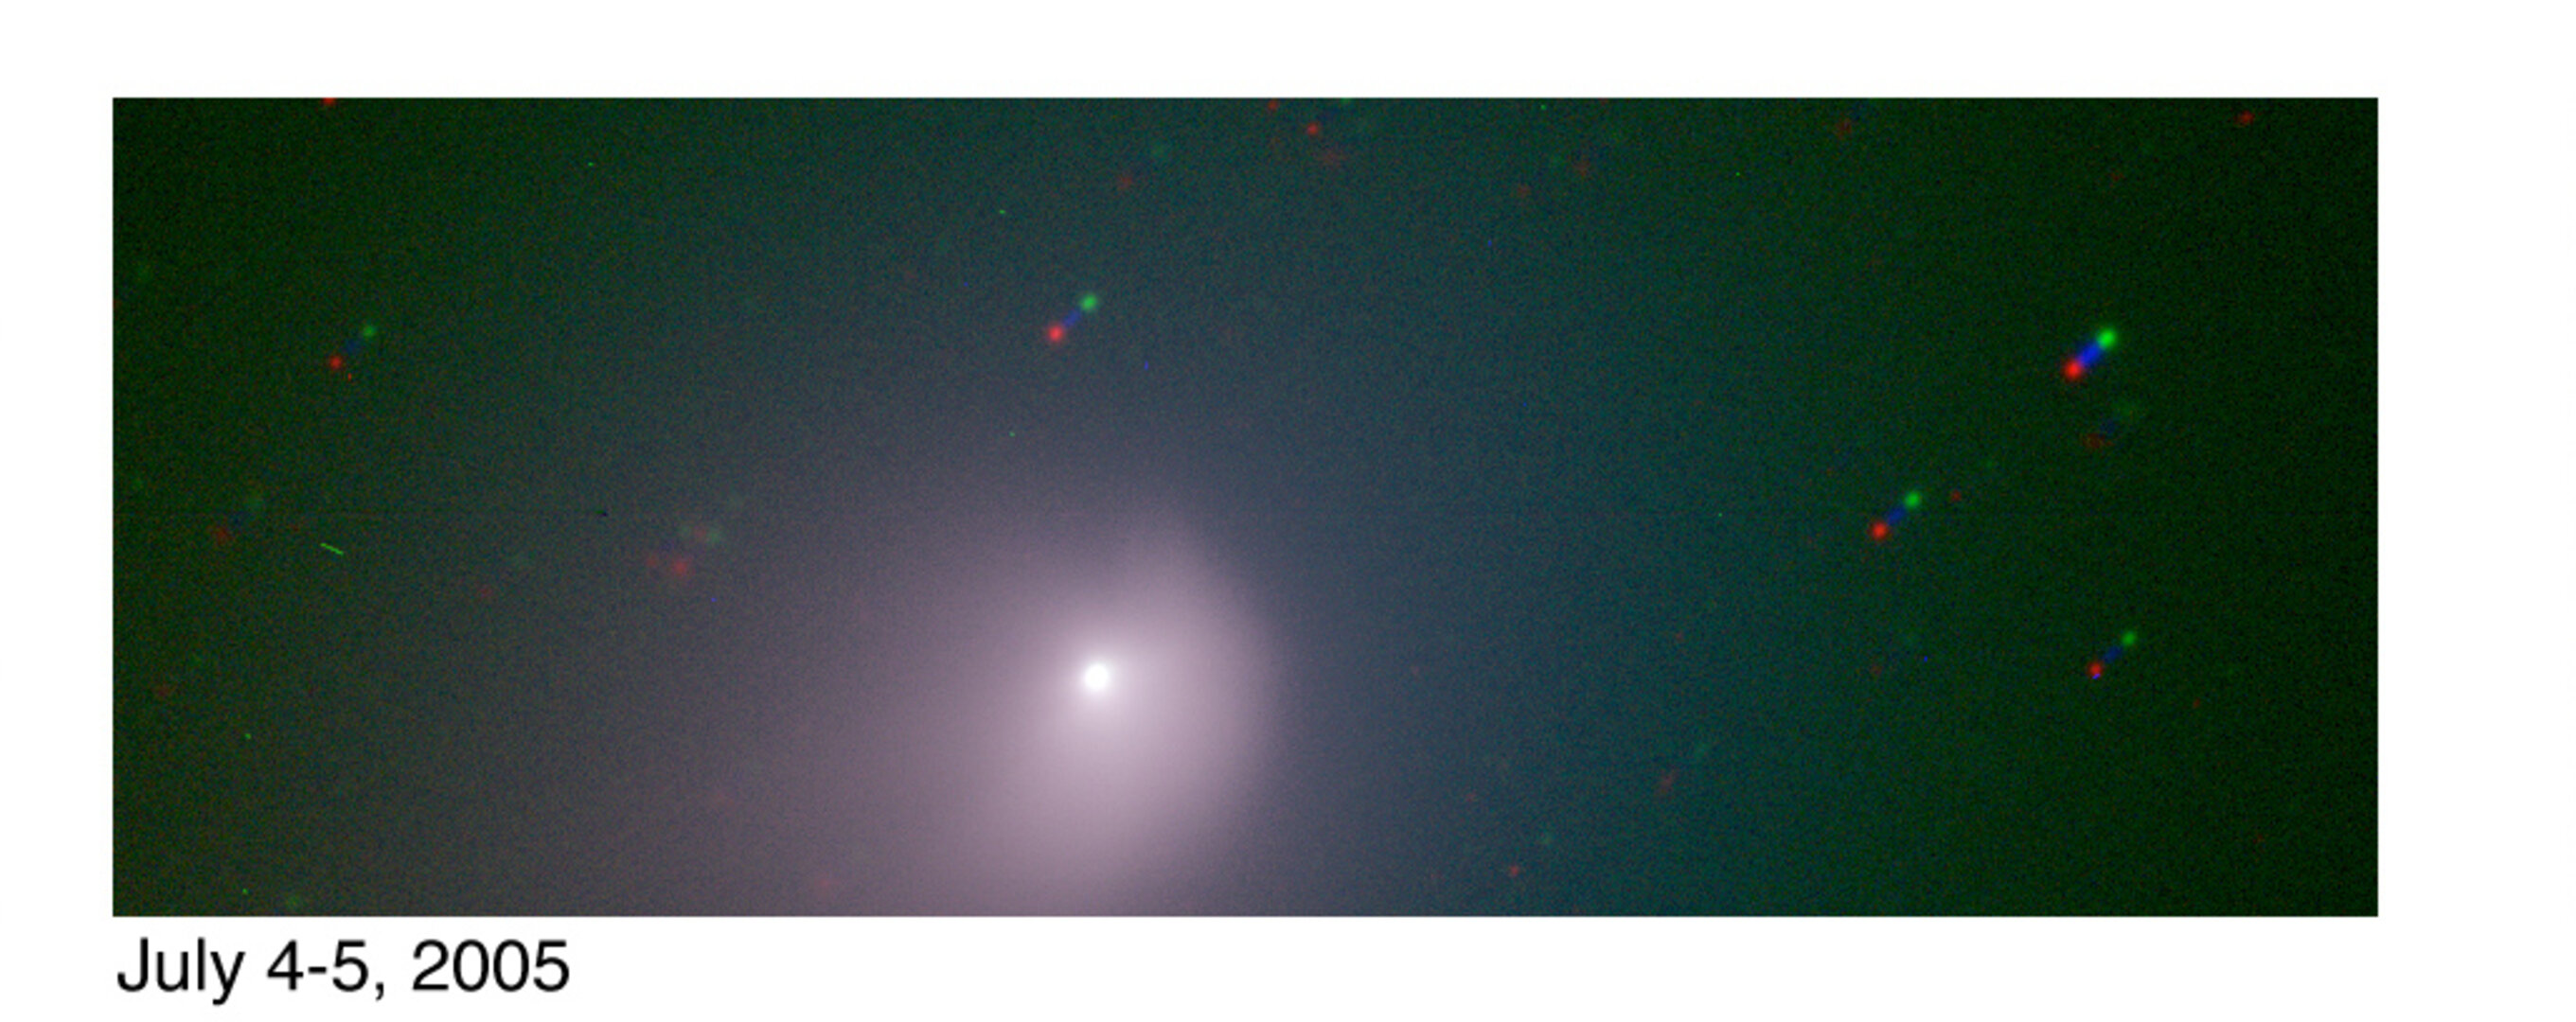 ESO FORS2  image of comet after impact